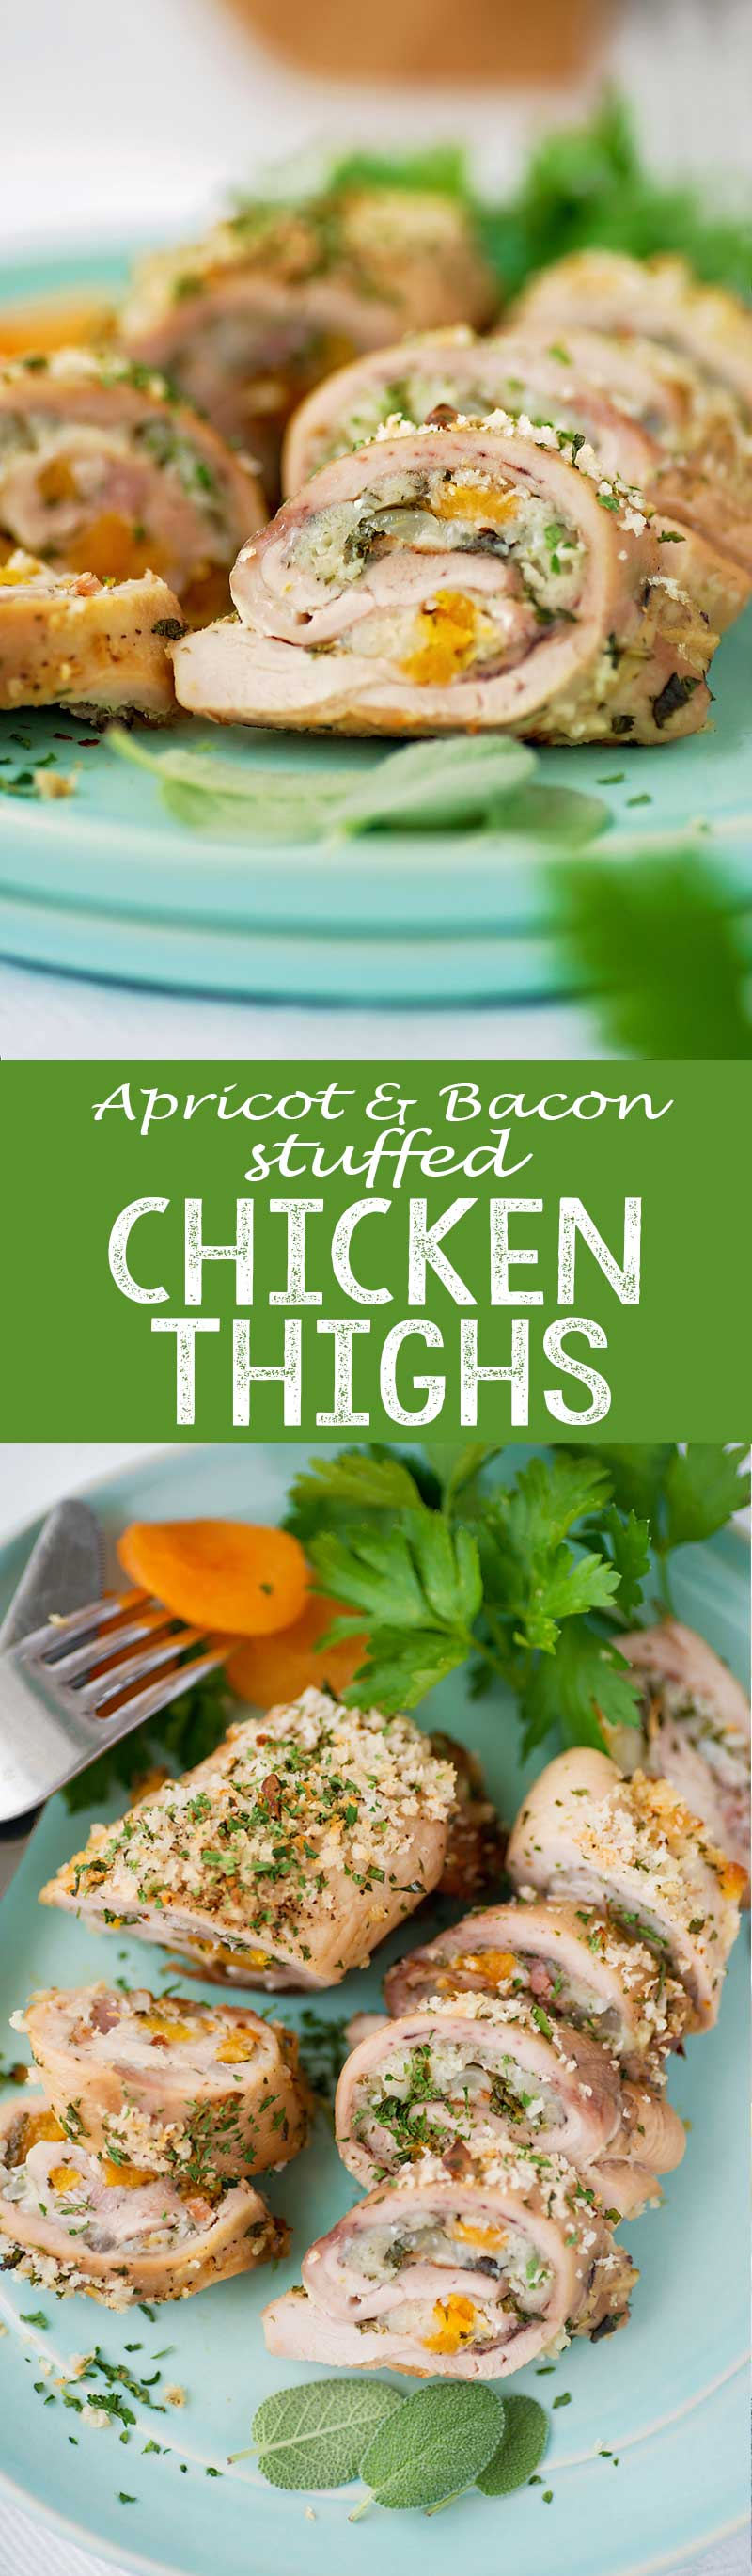 Apricot and Bacon stuffed chicken thighs